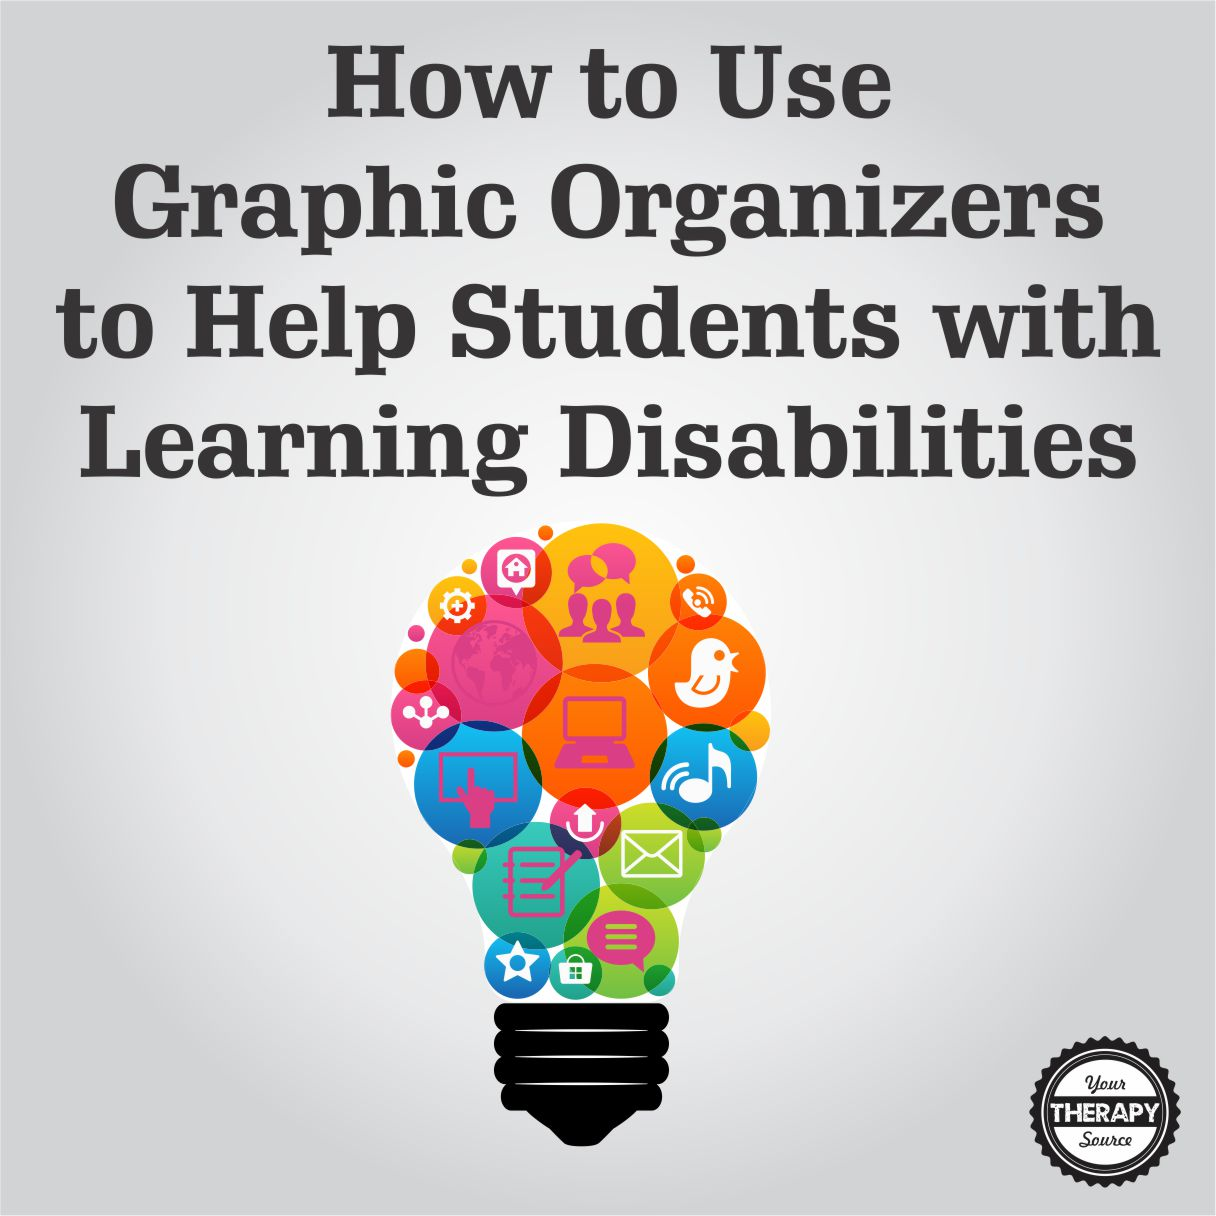 Students with learning disabilities are at risk for falling behind and may require explicit instruction to assist with comprehending text and producing written work.  Here is some information on how to use graphic organizers to help students with learning disabilities.